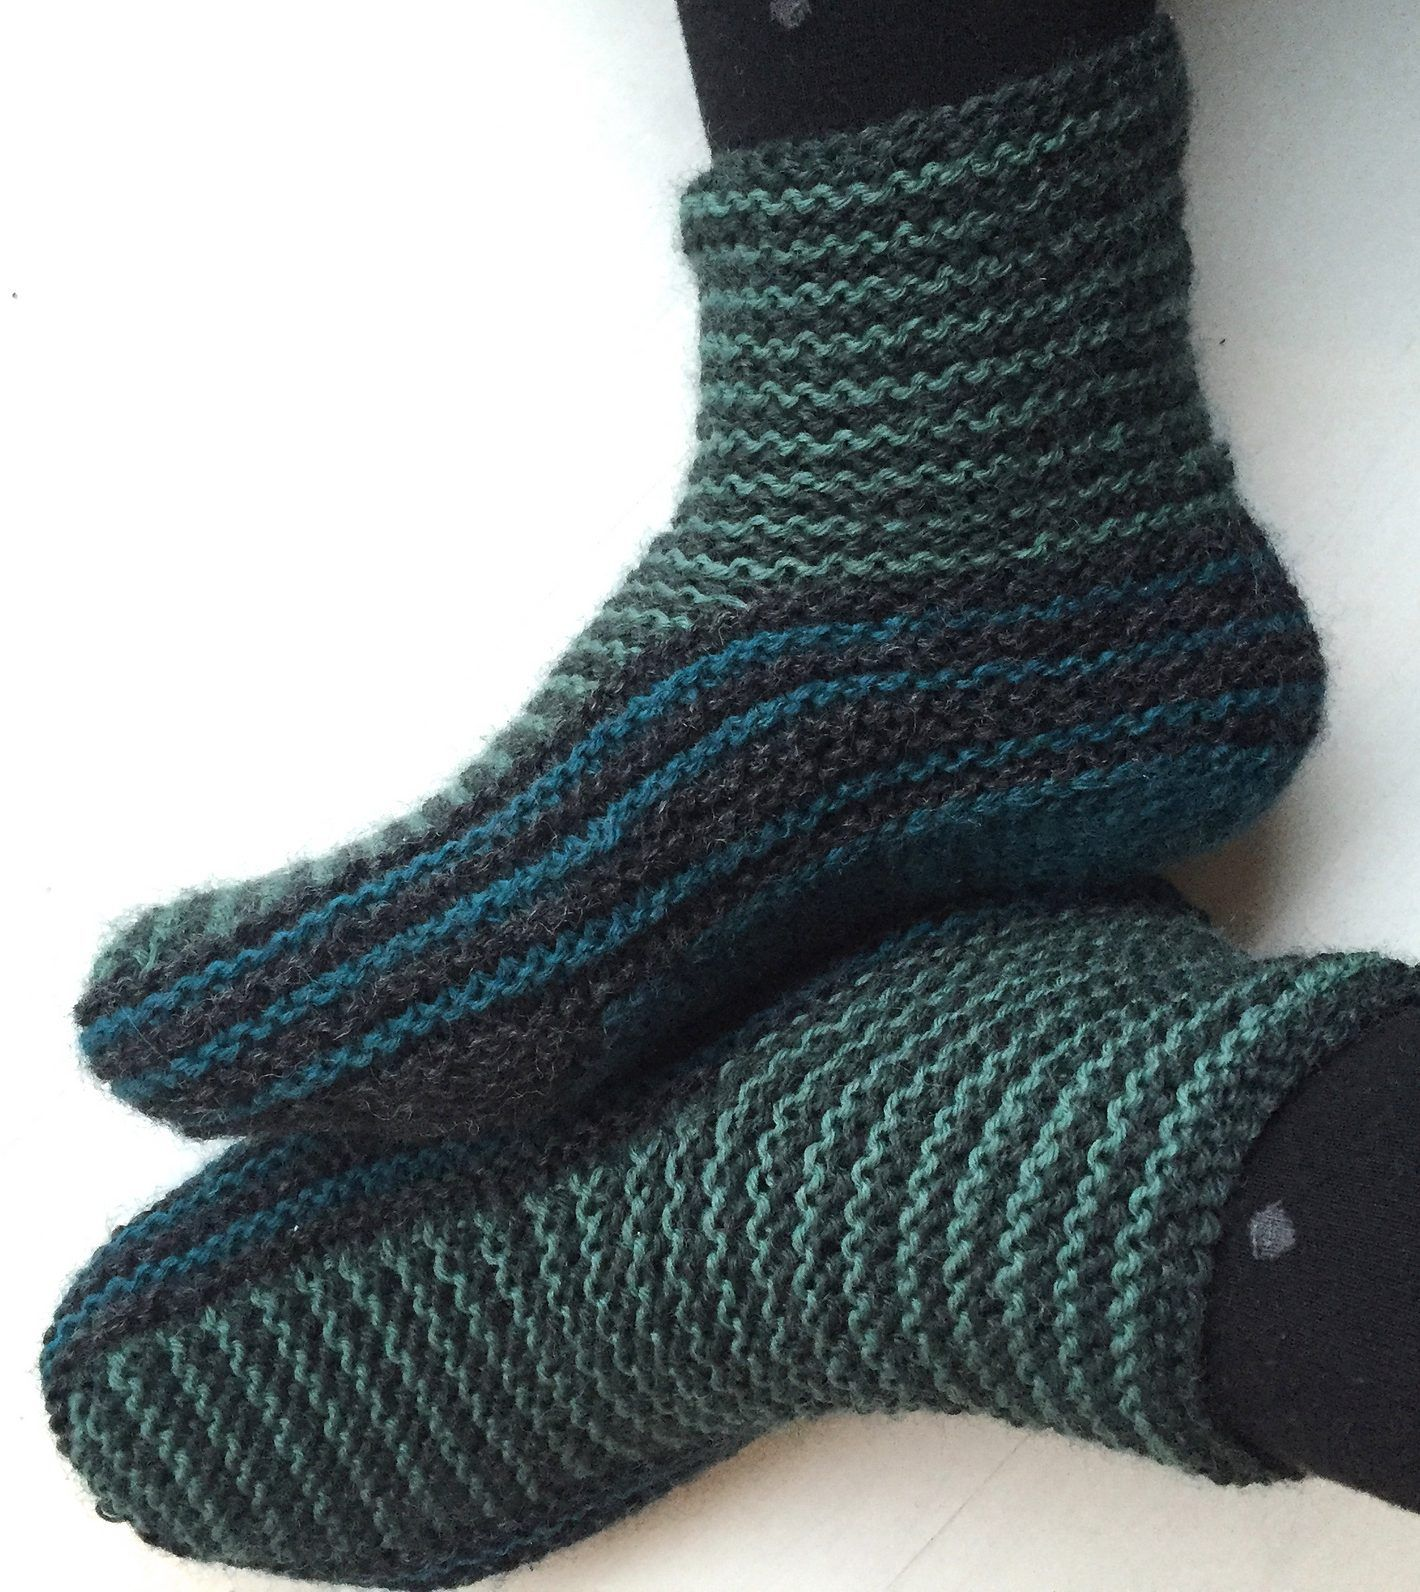 Knit Boots Pattern : Free Knitting Pattern for Grown-Up Garter Booties - Maria ...